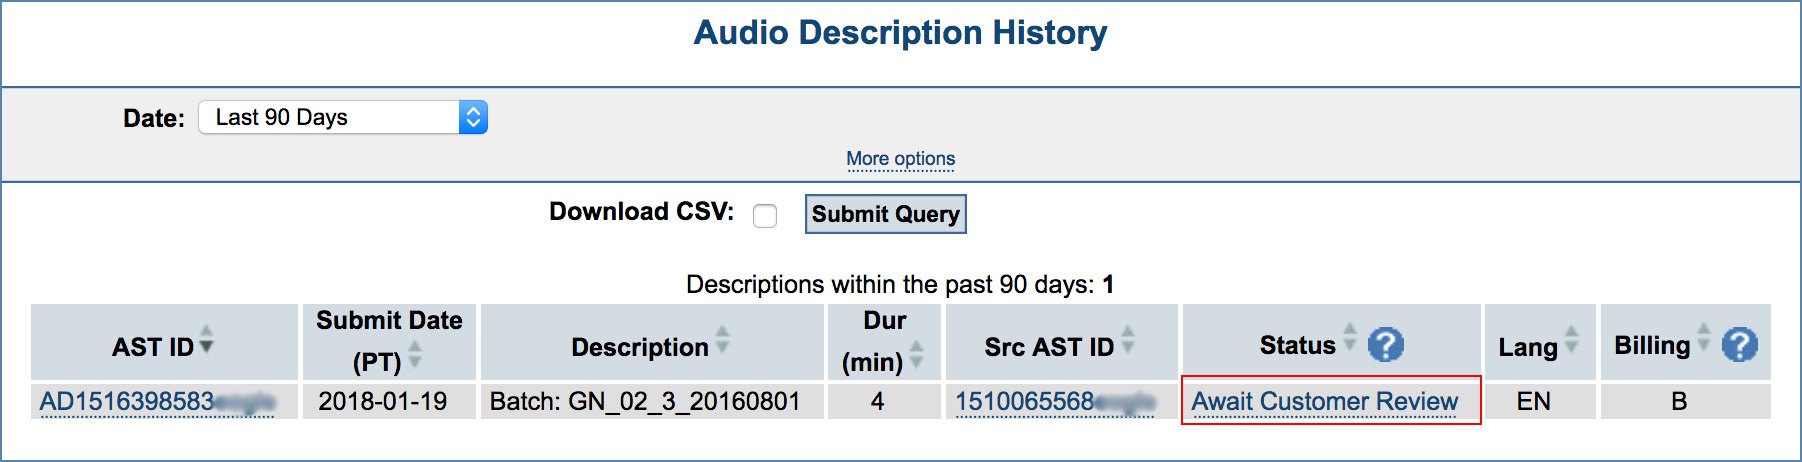 Image of the Audio Description History page, highlighting the Await Review link